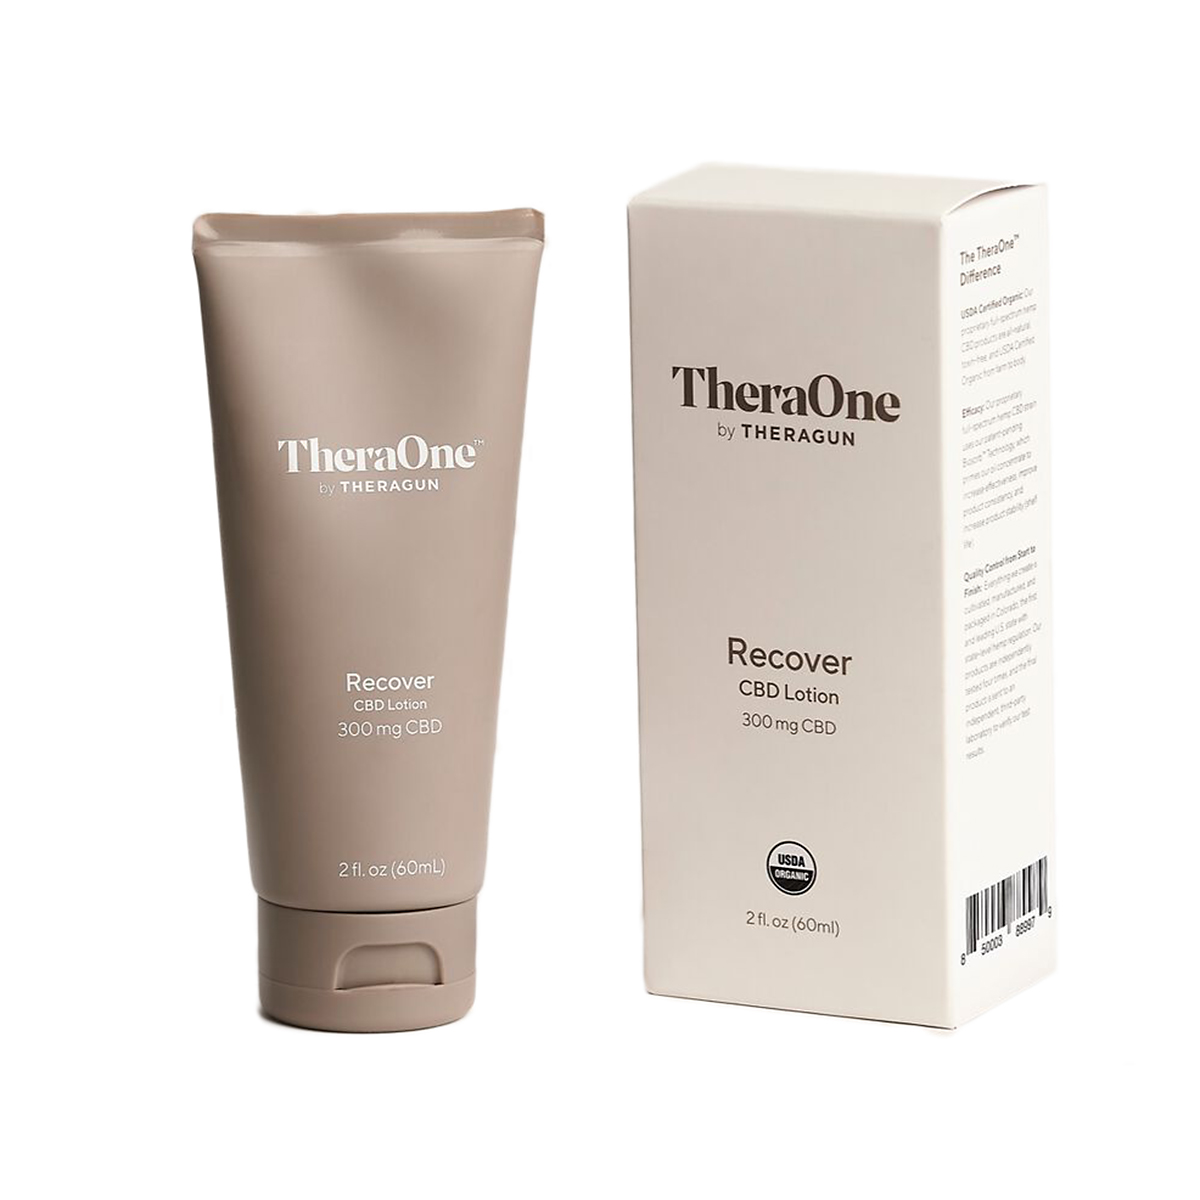 TheraOne Recover CBD Lotion - Size: One Size, , large, image 2